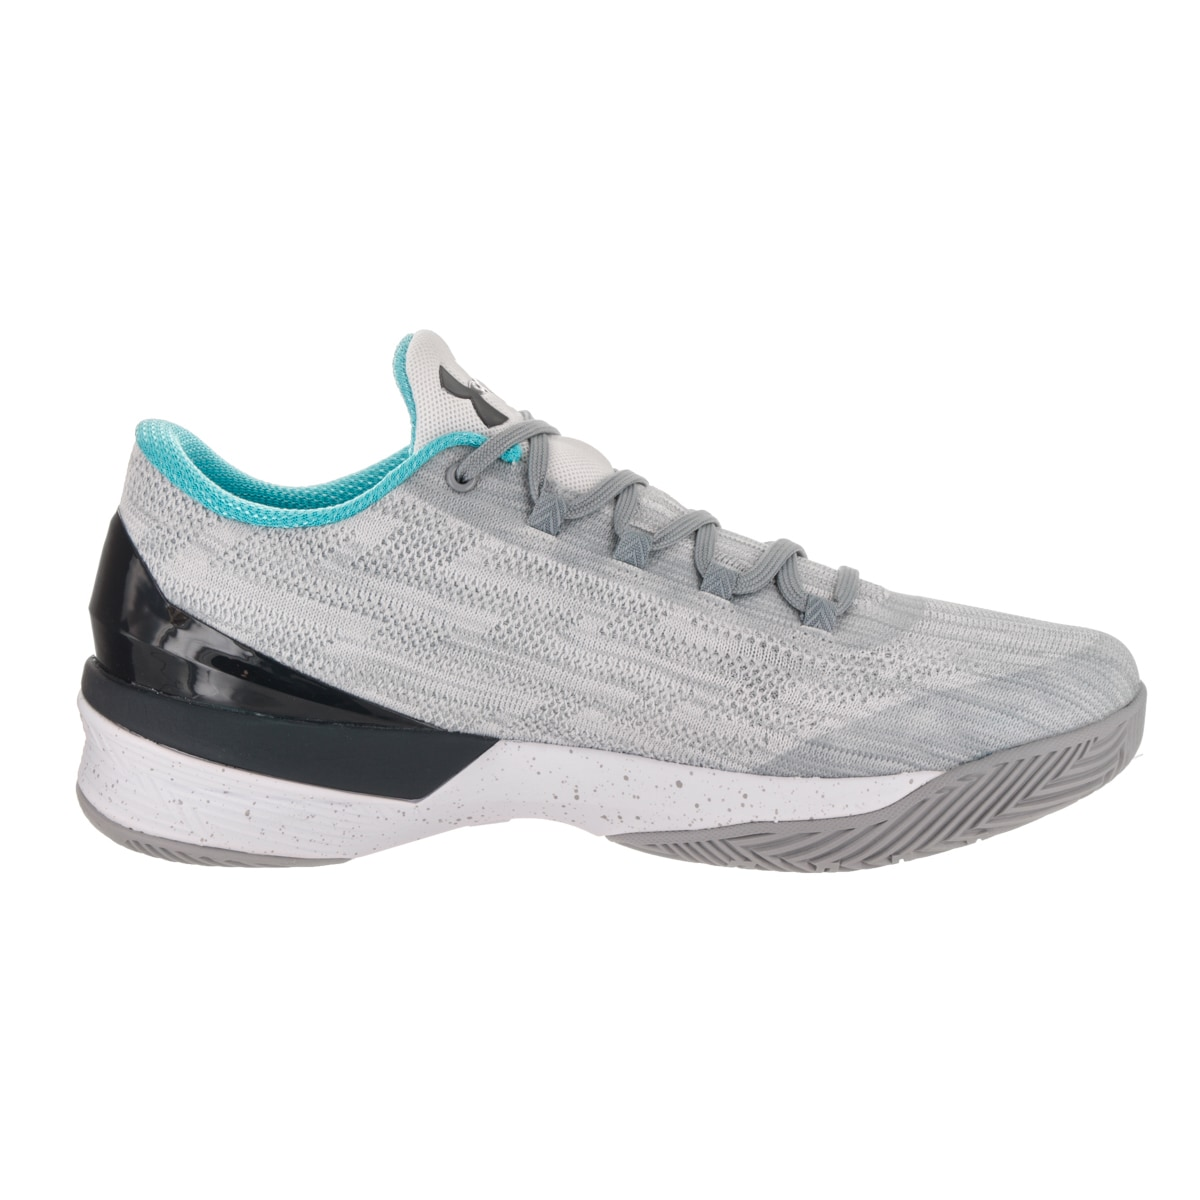 54cc88dbf72 Shop Under Armour Men s Charged Controller Grey Textile Basketball Shoes -  Free Shipping Today - Overstock - 14427965